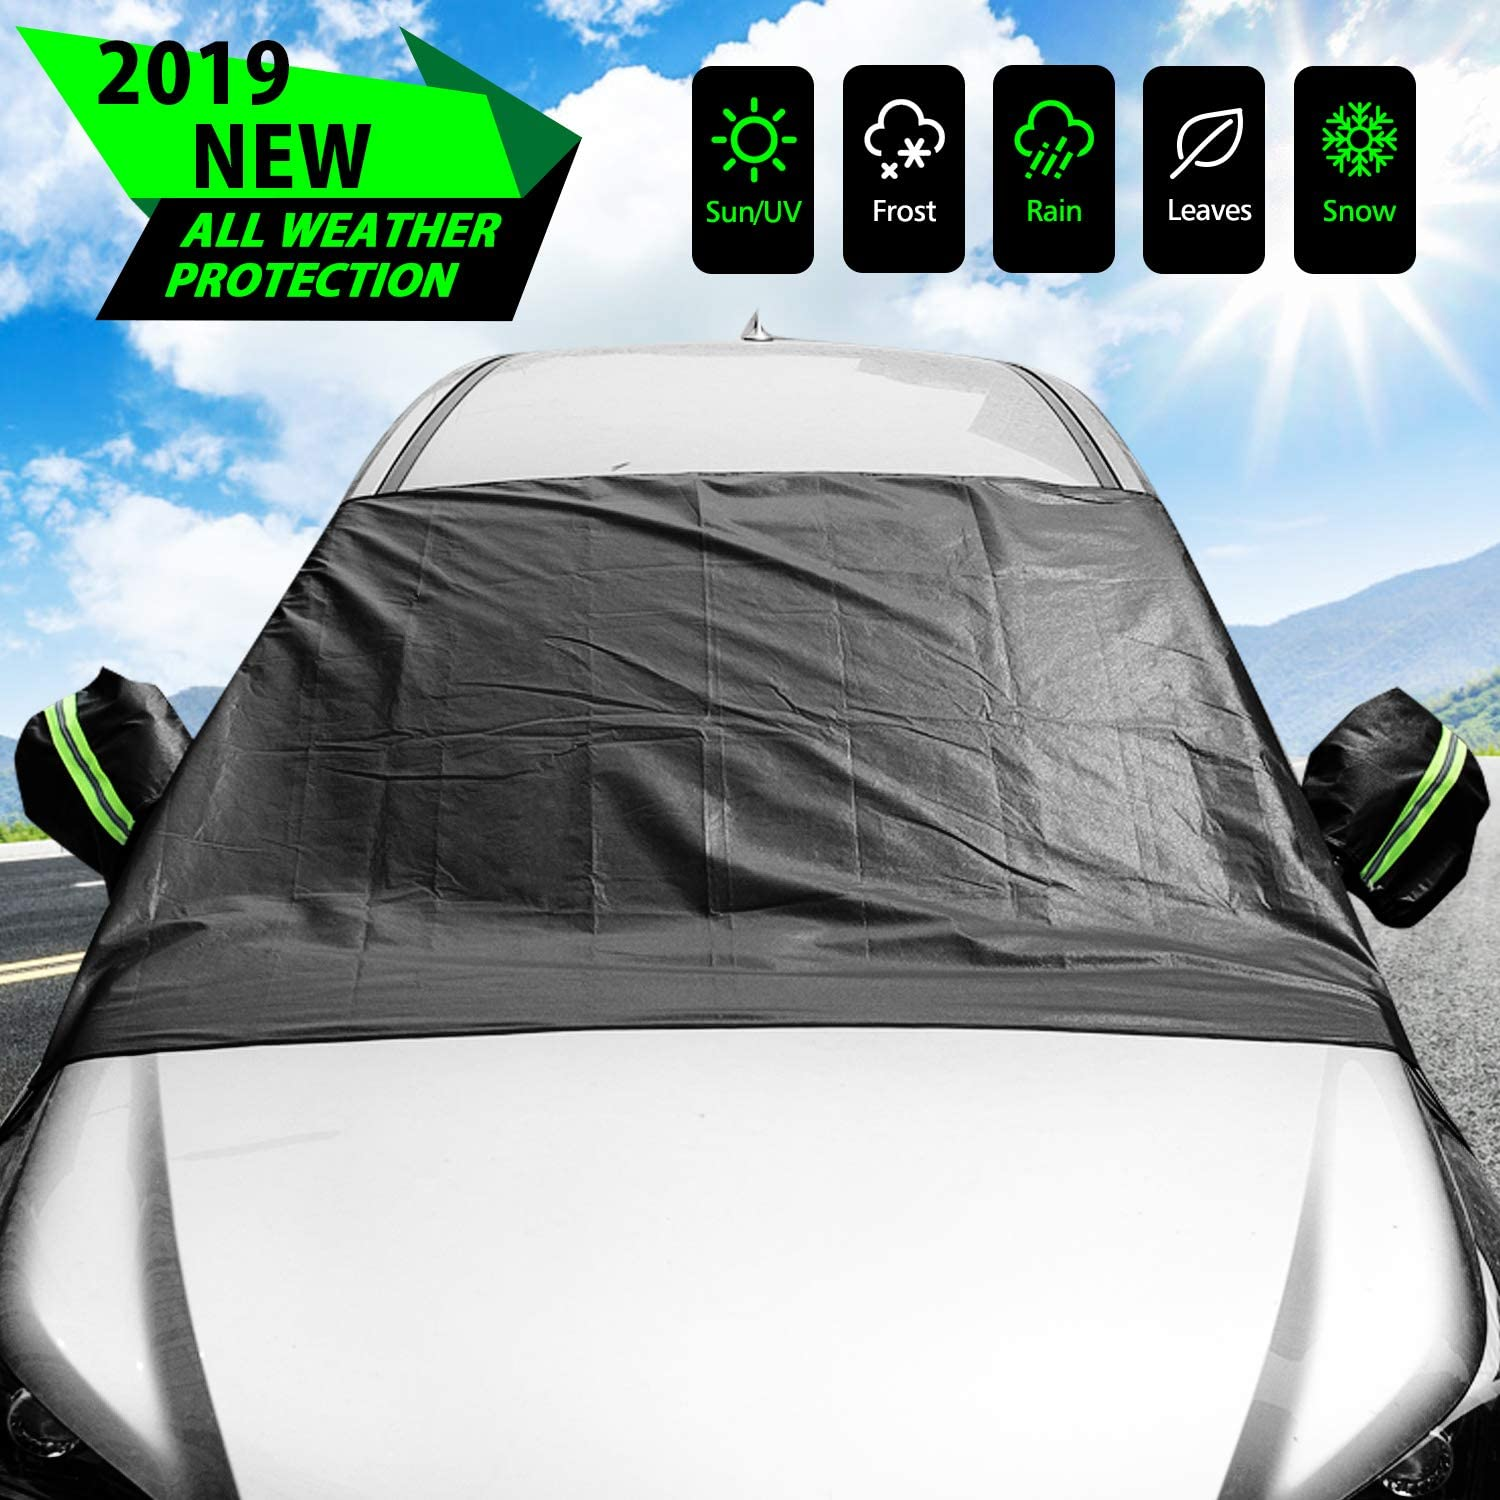 Free Amazon Promo Code 2020 Car Windshield Sun Shade All Season